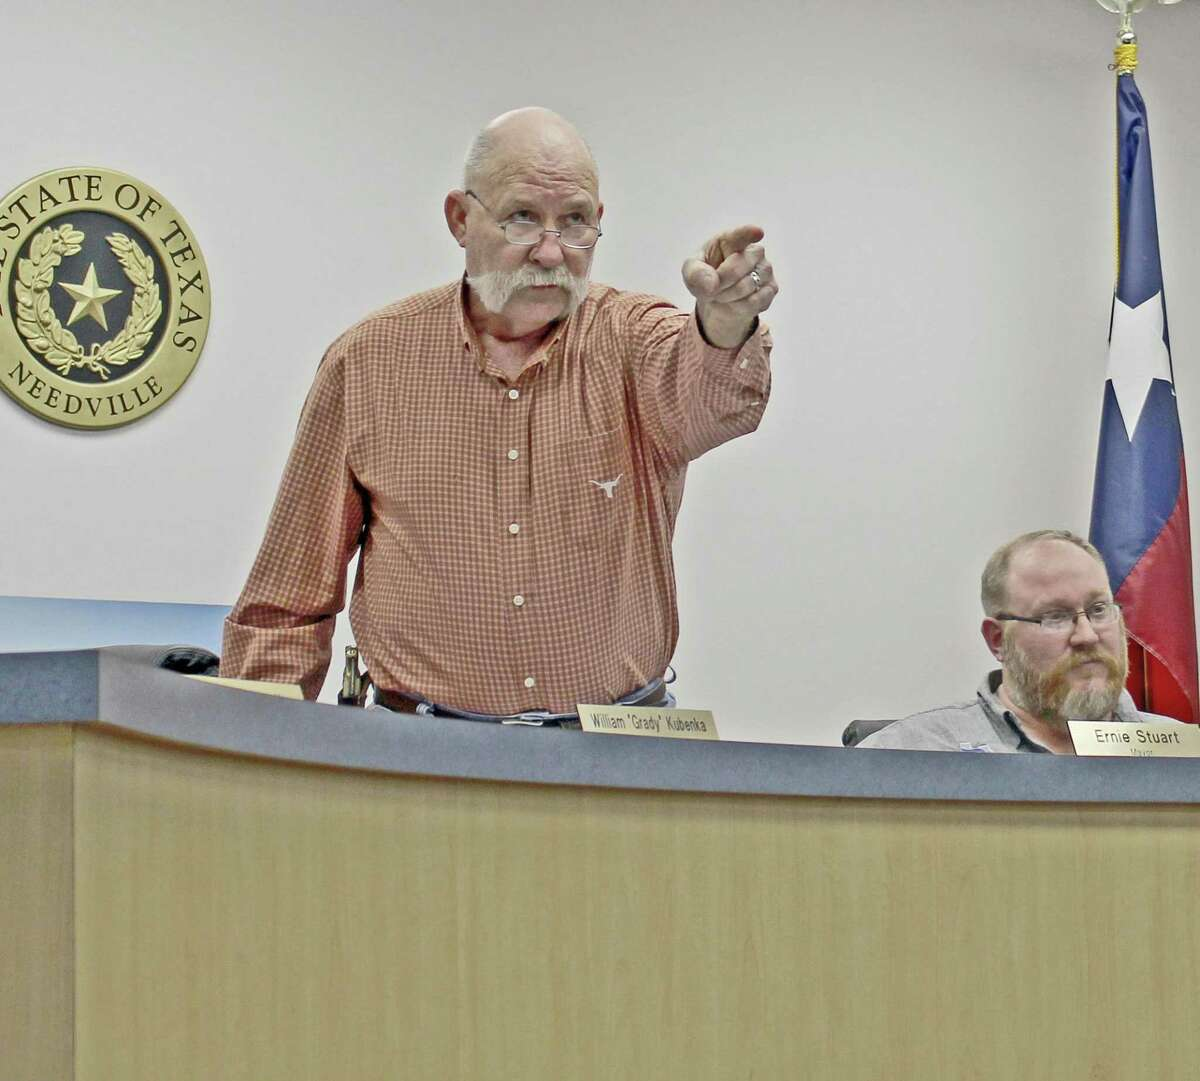 """Tempers flared at a recent Needville City Council meeting during discussions over a lawsuit recently filed against the city temporarily blocking plans to demolish the city's historic water tower. Mayor Stuart stood and yelled for police officers to escort a woman from the meeting after she spoke out from the audience. """"You people think I am playing up here?"""" Stuart said, shaking his finger at the standing-room only crowd. A trial is scheduled Oct. 9 to decide the fate of the water tower."""